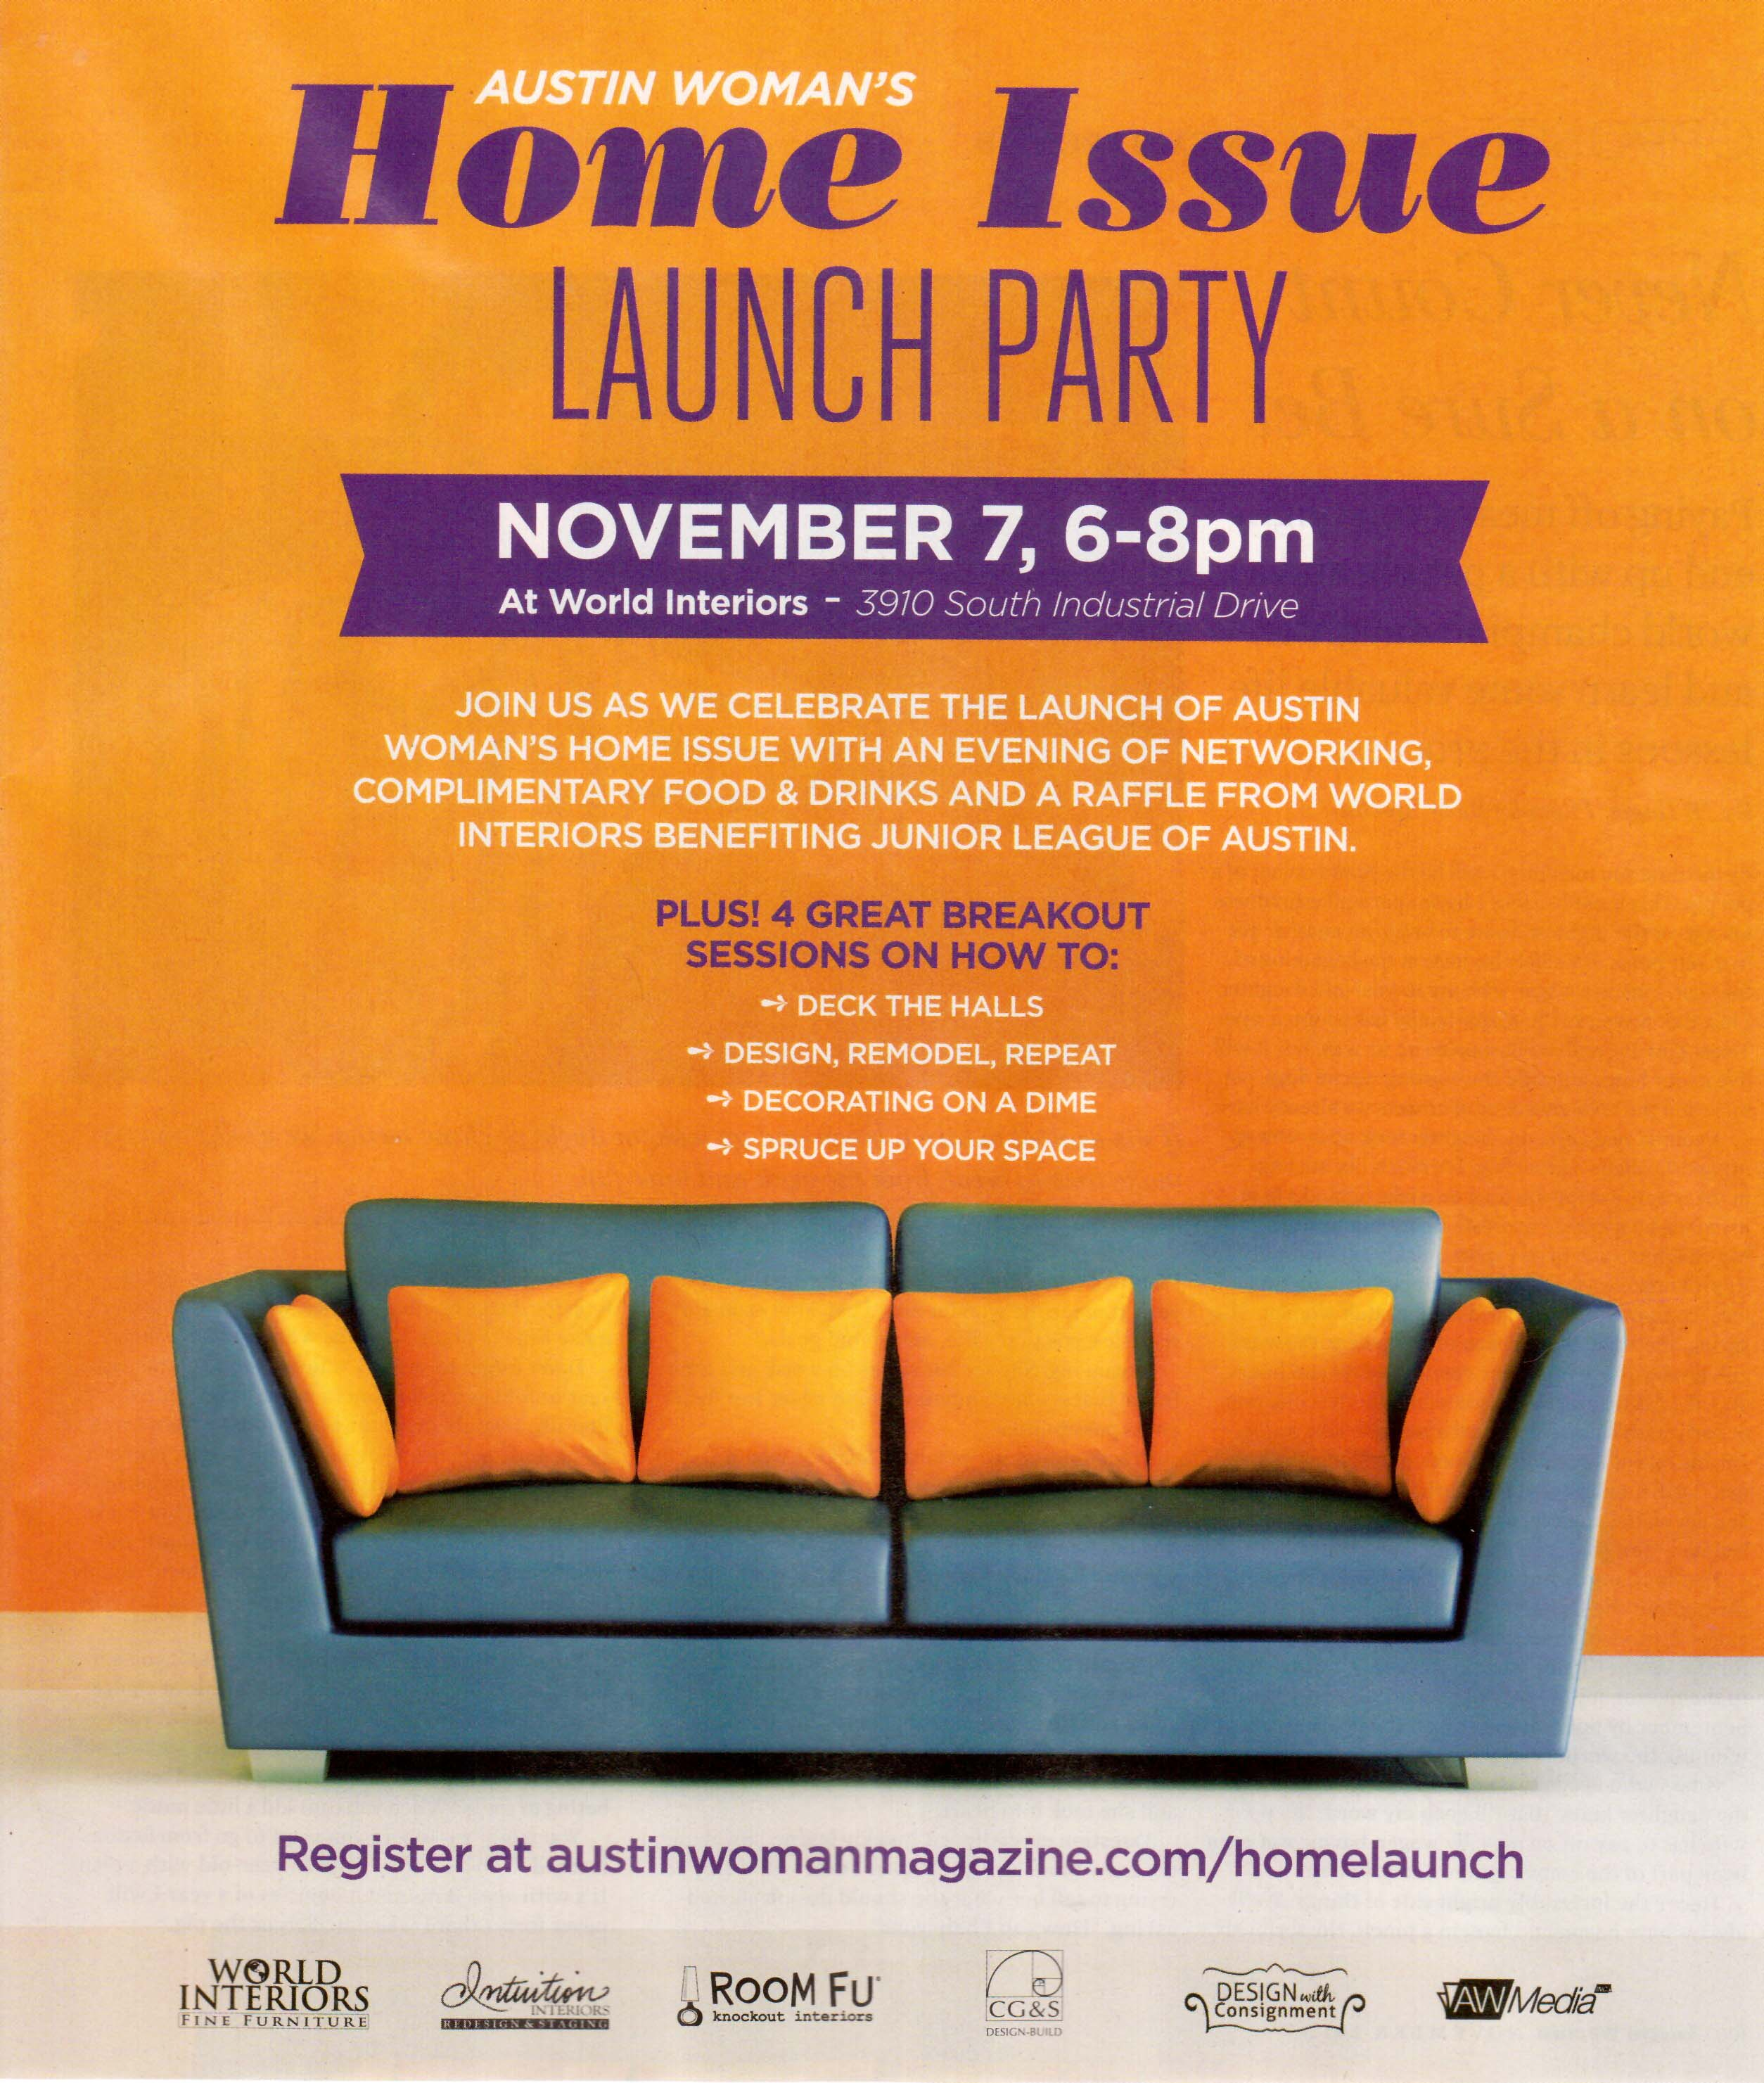 austin-woman-magazine-home-issue-party